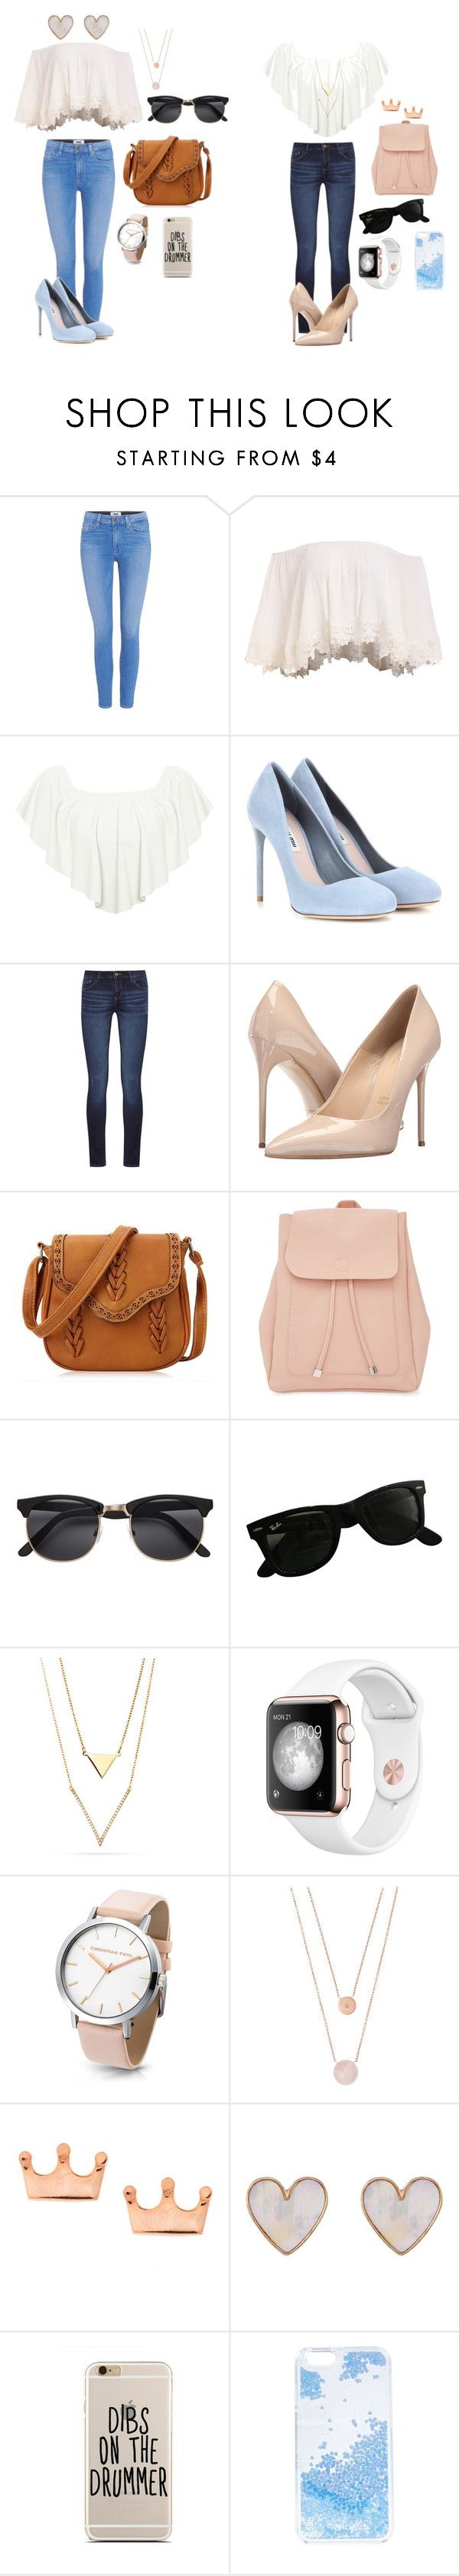 """Outfits para una cita"" by sofia-alonsopopular on Polyvore featuring Paige Denim, WearAll, Miu Miu, DL1961 Premium Denim, Massimo Matteo, New Look, Ray-Ban, Michael Kors y Skinnydip"